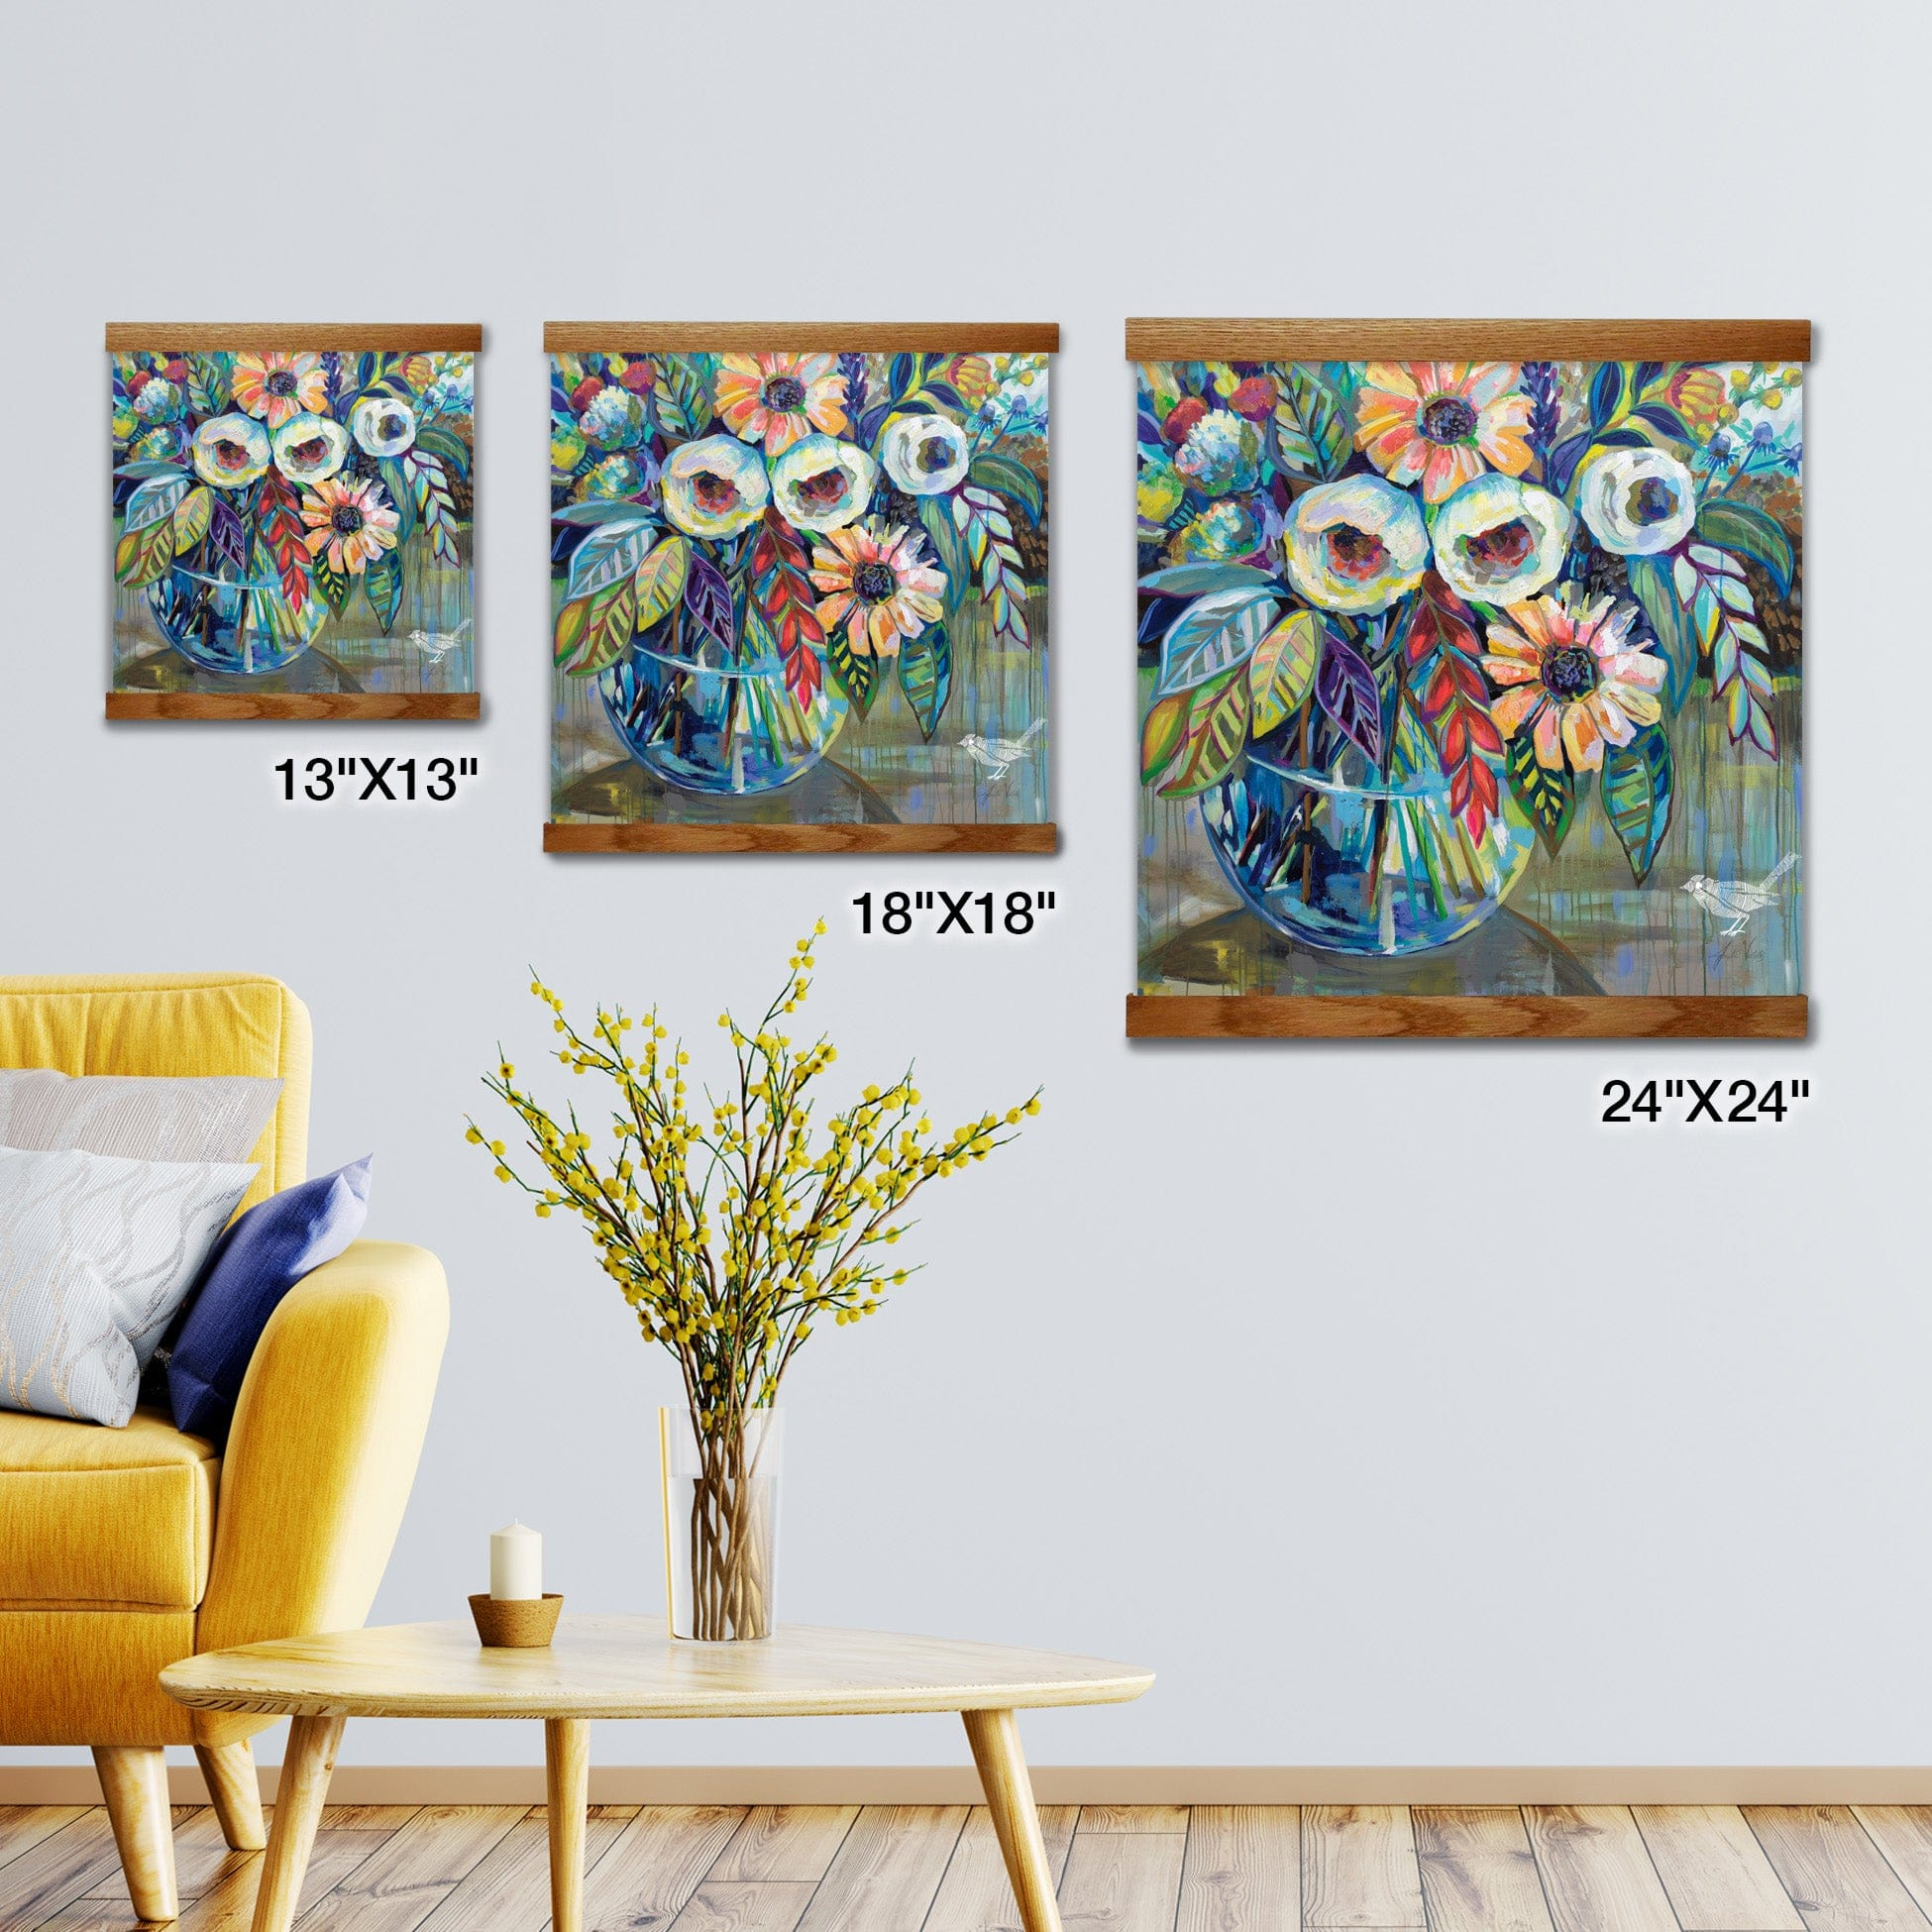 Joy Artwork Wall Decor